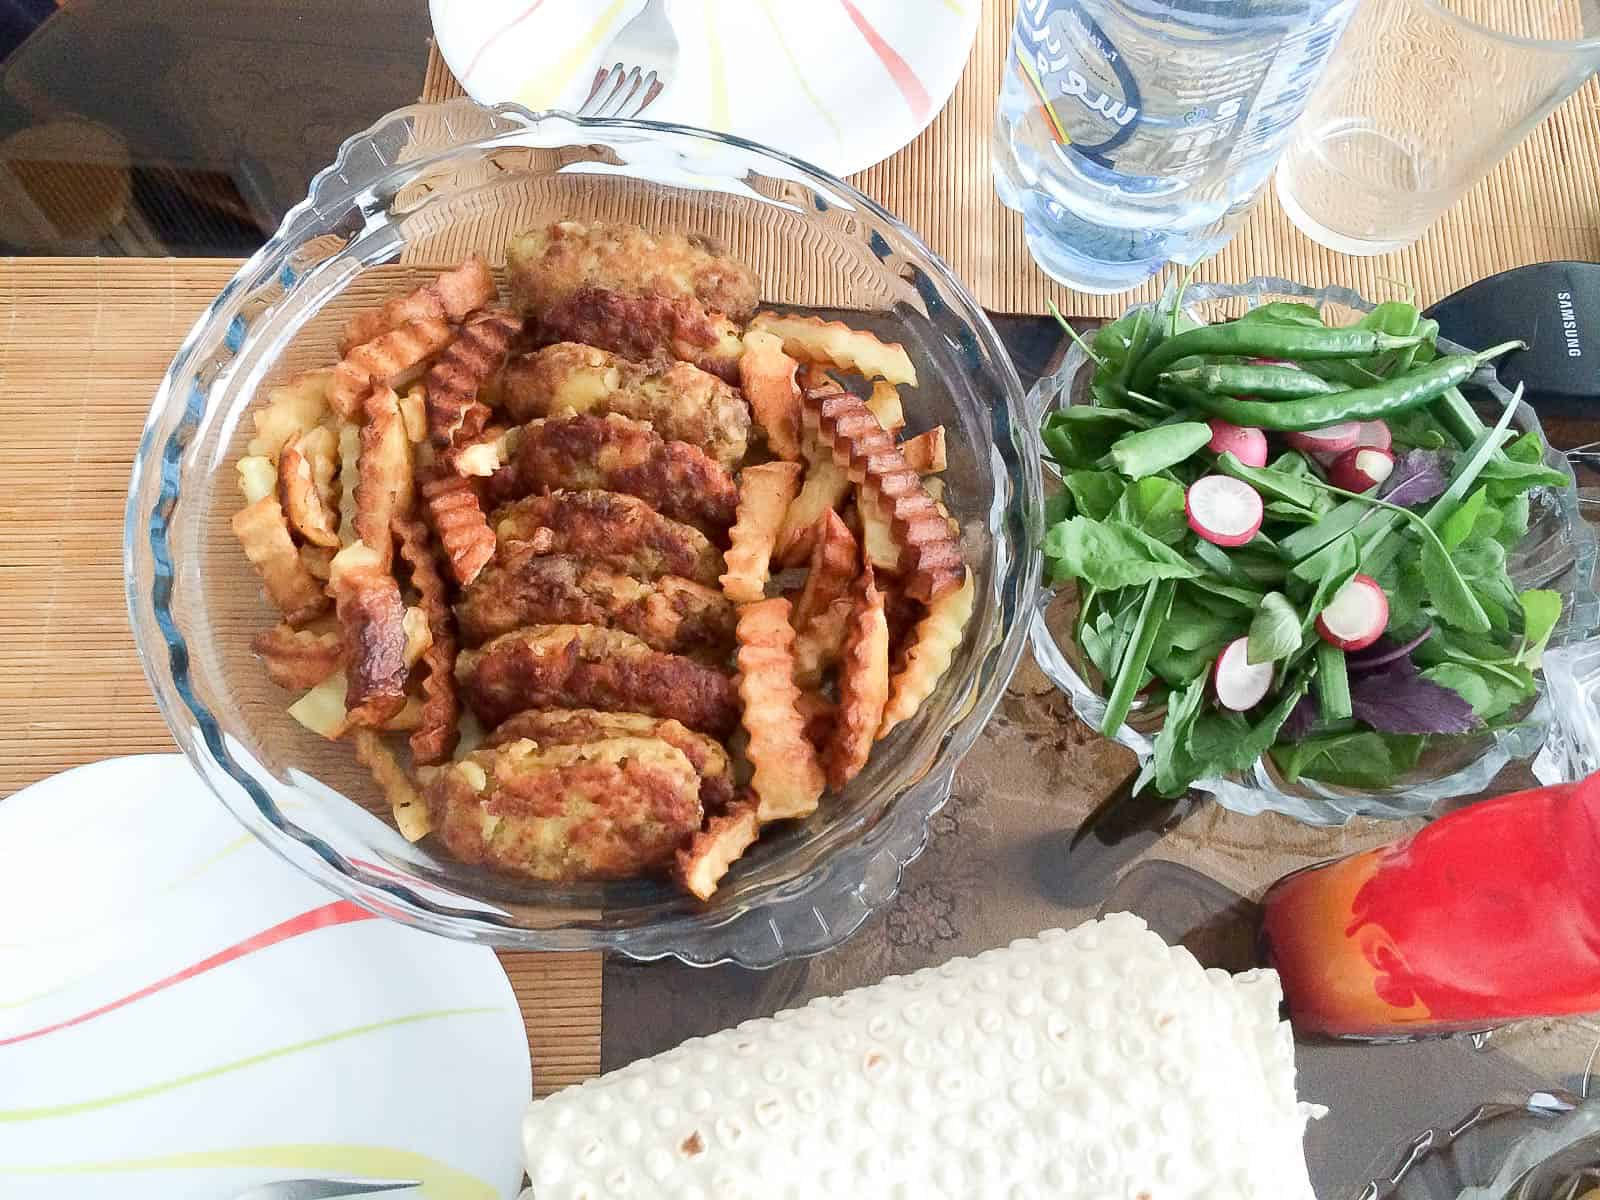 Persian meat patties AKA Kotlet are a dish from Iran, they taste like home!